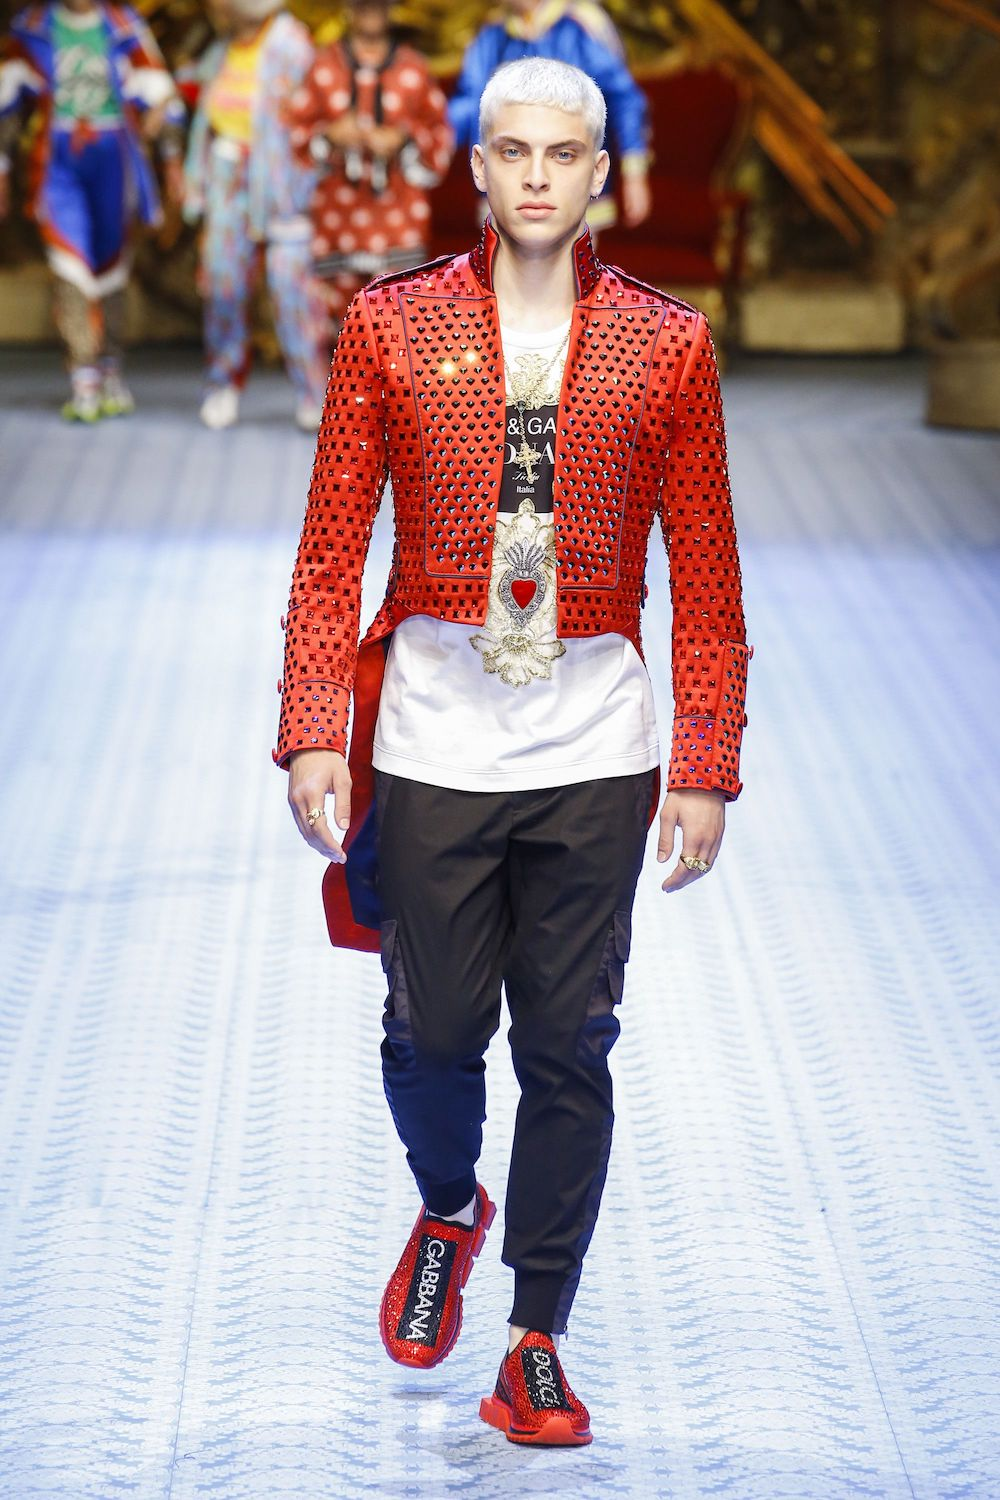 Men's Red Blazer With Studs - Dolce & Gabbana Spring 2019 Men's Collection